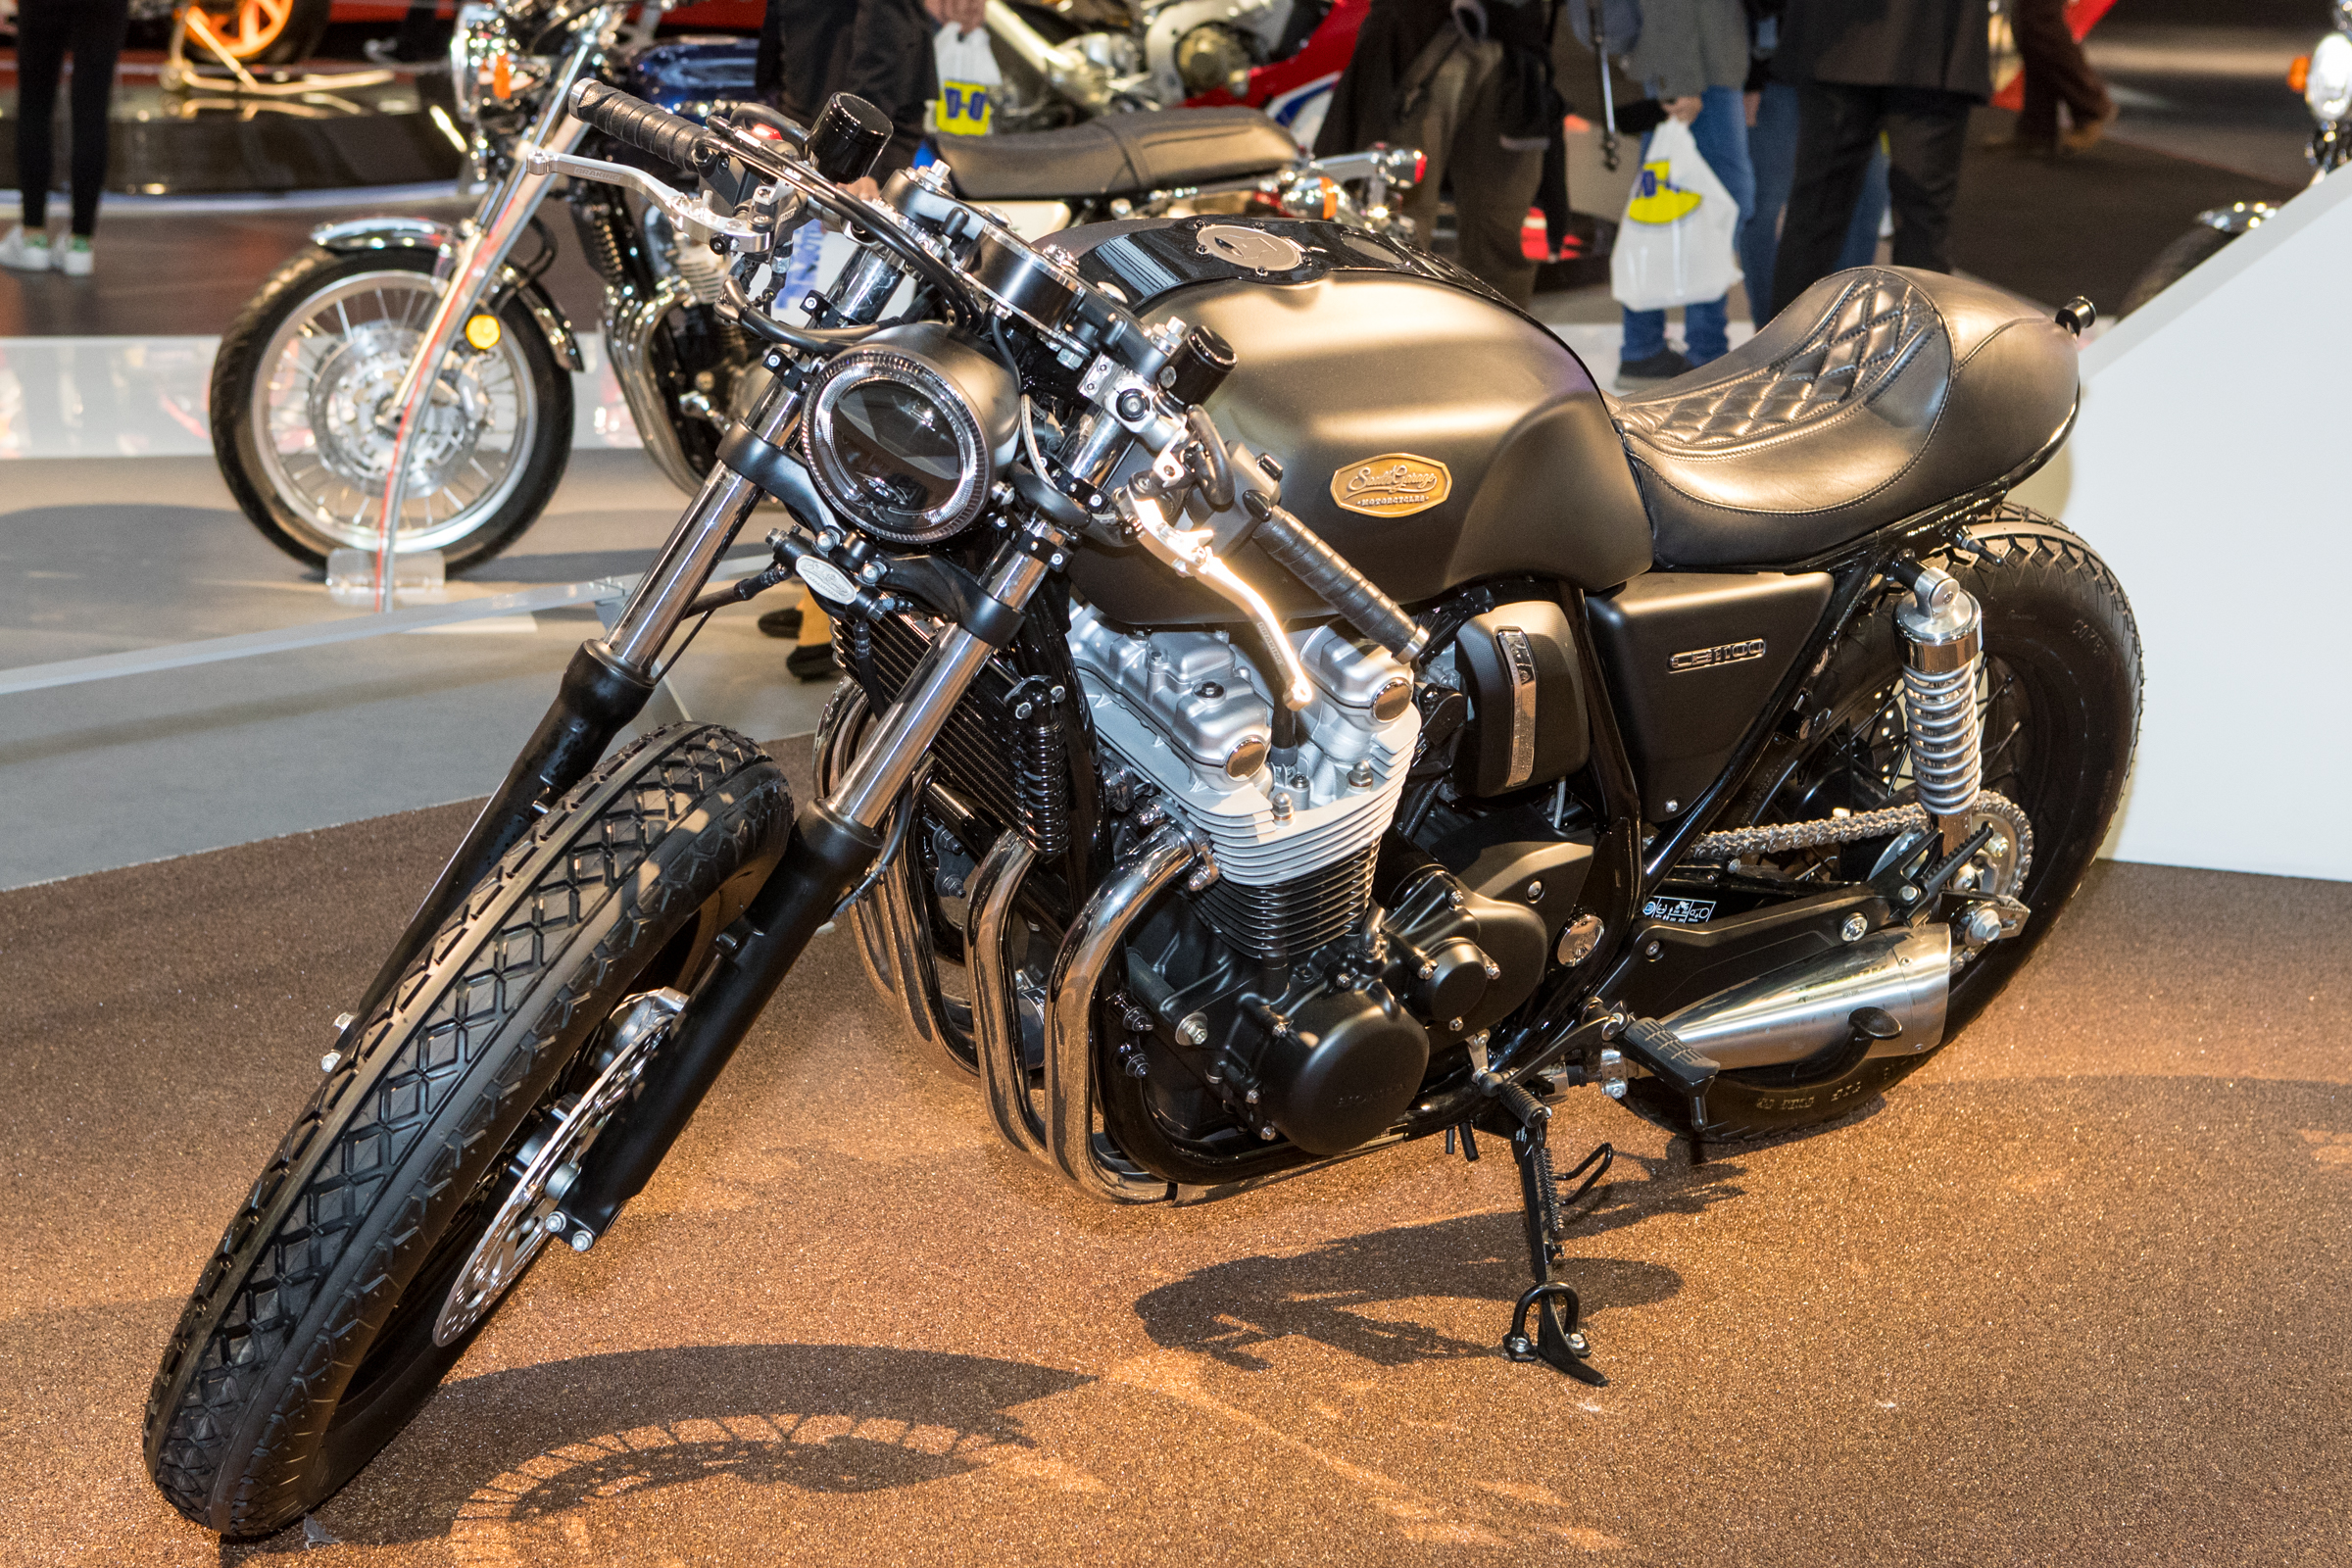 We'll cap off the Honda area with this custom CB1100, drool...